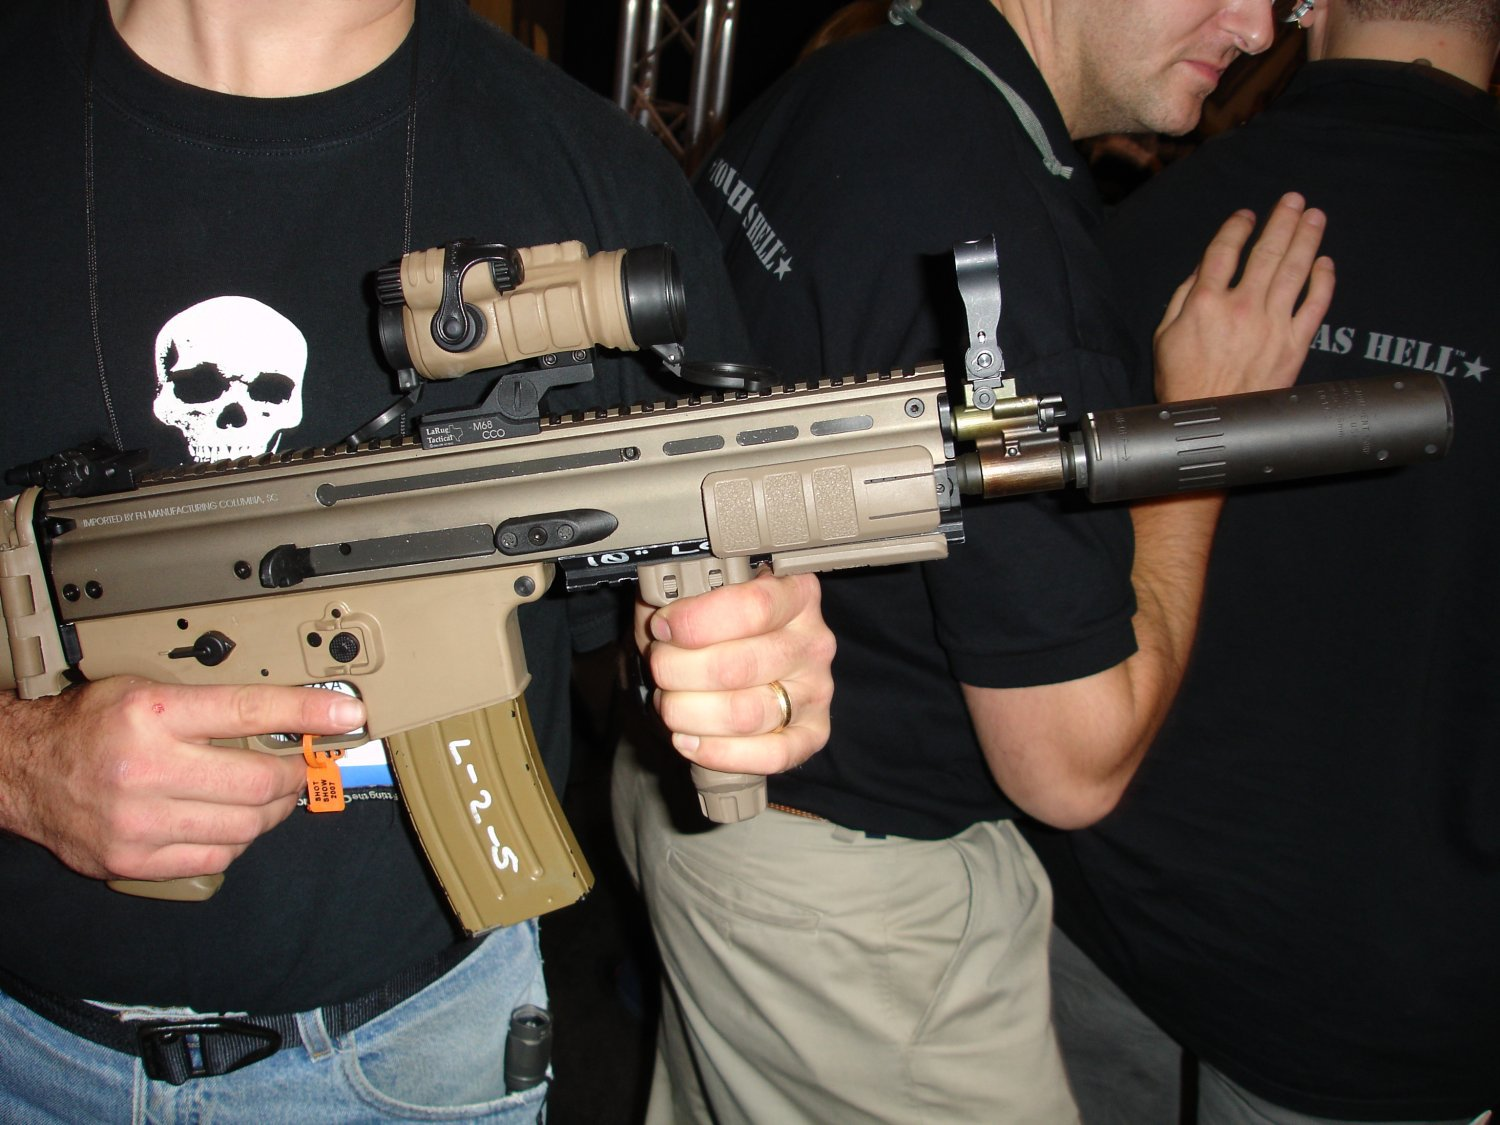 <!--:en-->SOCOM Cancels FN Mk-16 SCAR-L (SCAR-Light) 5.56mm NATO Rifle/Carbine/SBR Weapons Program. Will the FN Mk-17 SCAR-H (SCAR-Heavy) 7.62mm NATO Variant Survive? Only the Shadow Knows. <!--:-->